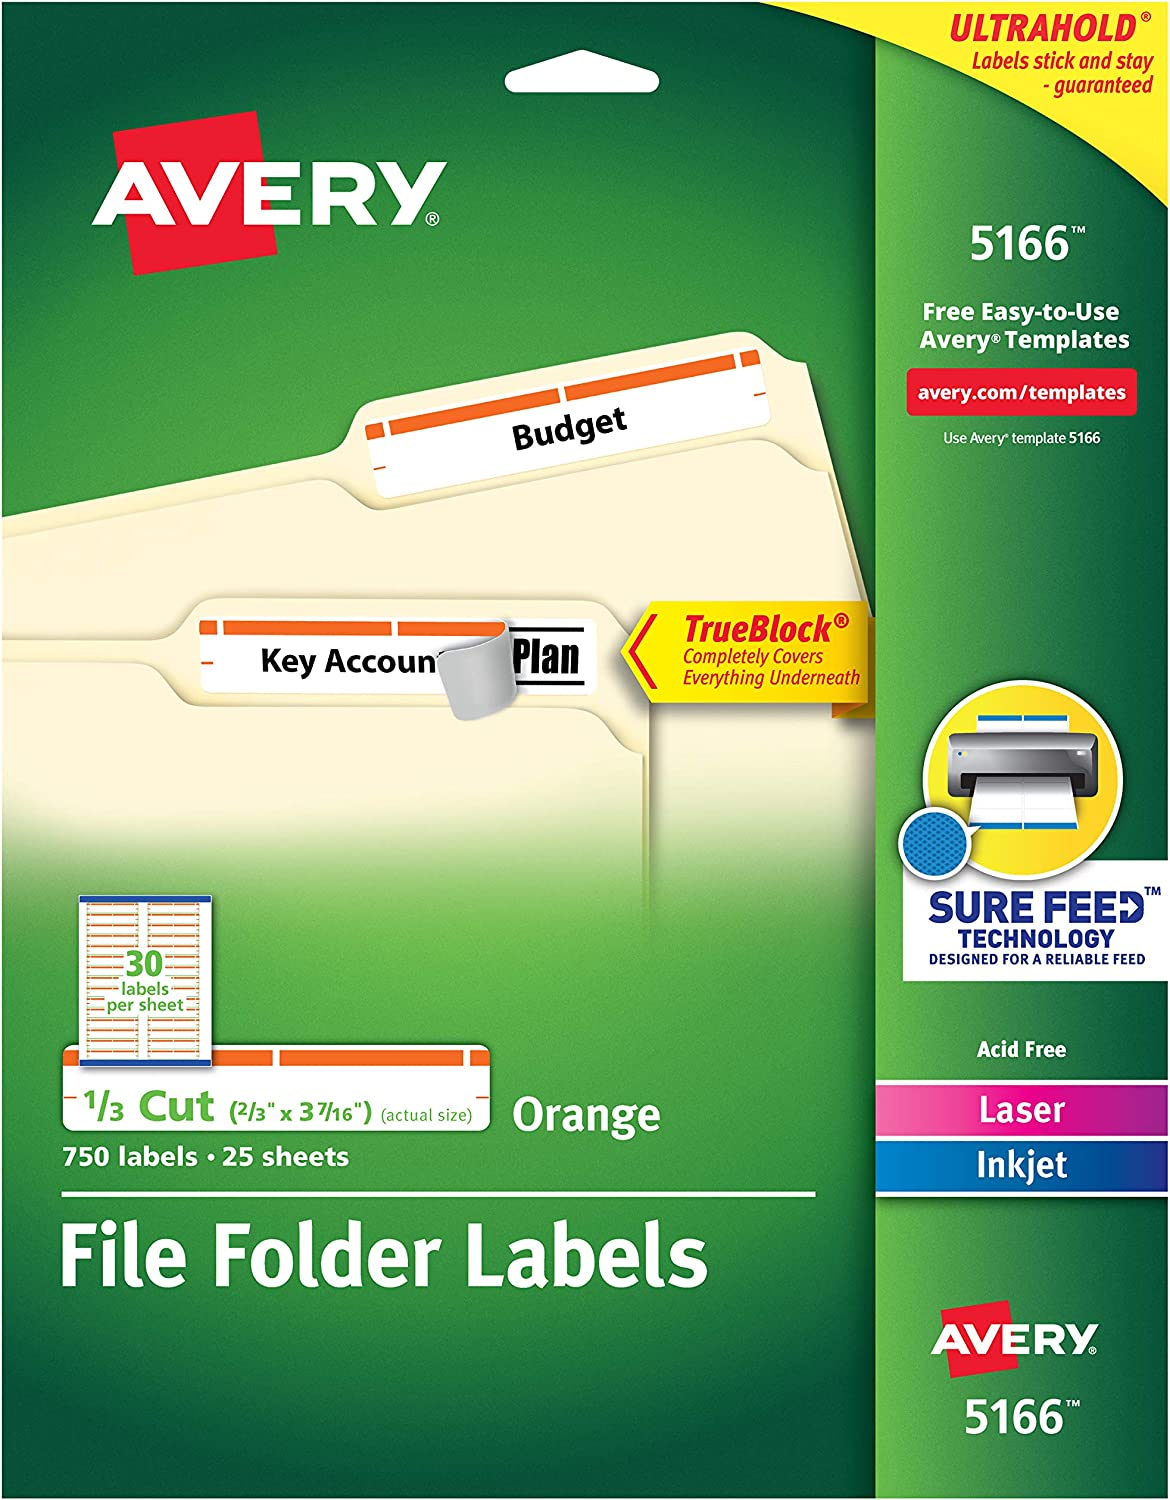 AVERY 5166 Permanent File Folder Labels, TrueBlock, Inkjet/Laser, Orange Border, Pack of 750